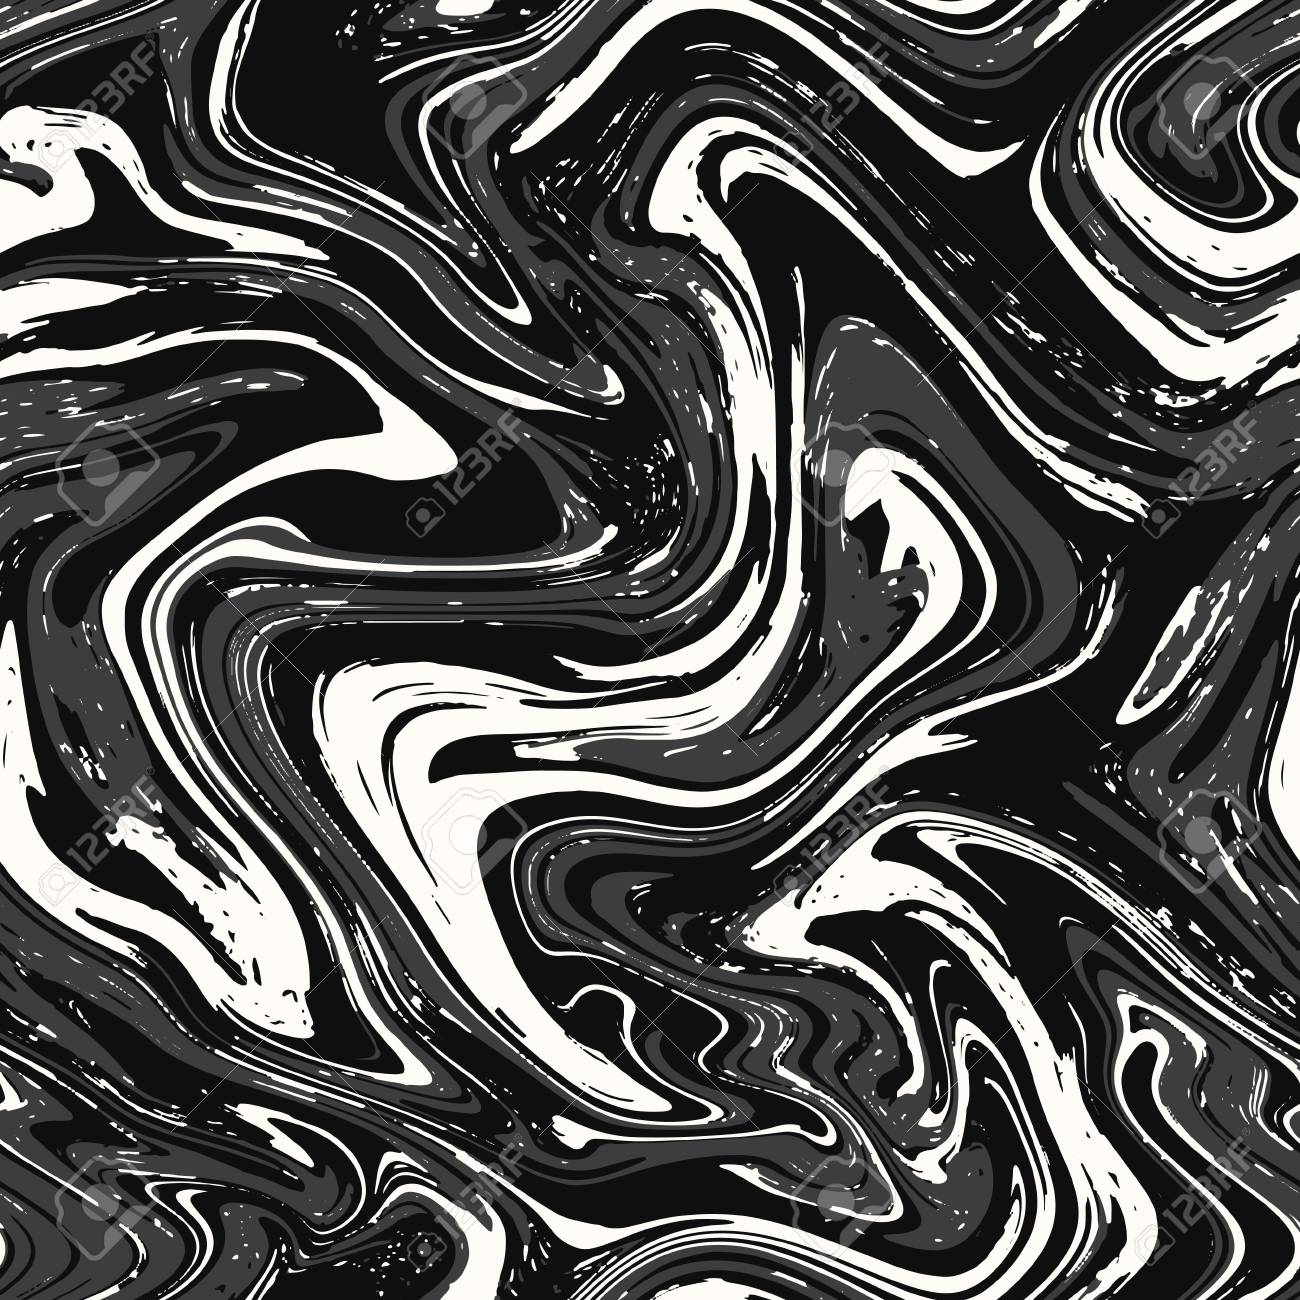 Marble Texture Seamless Background Abstract Black And White Pattern Royalty Free Cliparts Vectors And Stock Illustration Image 113361176